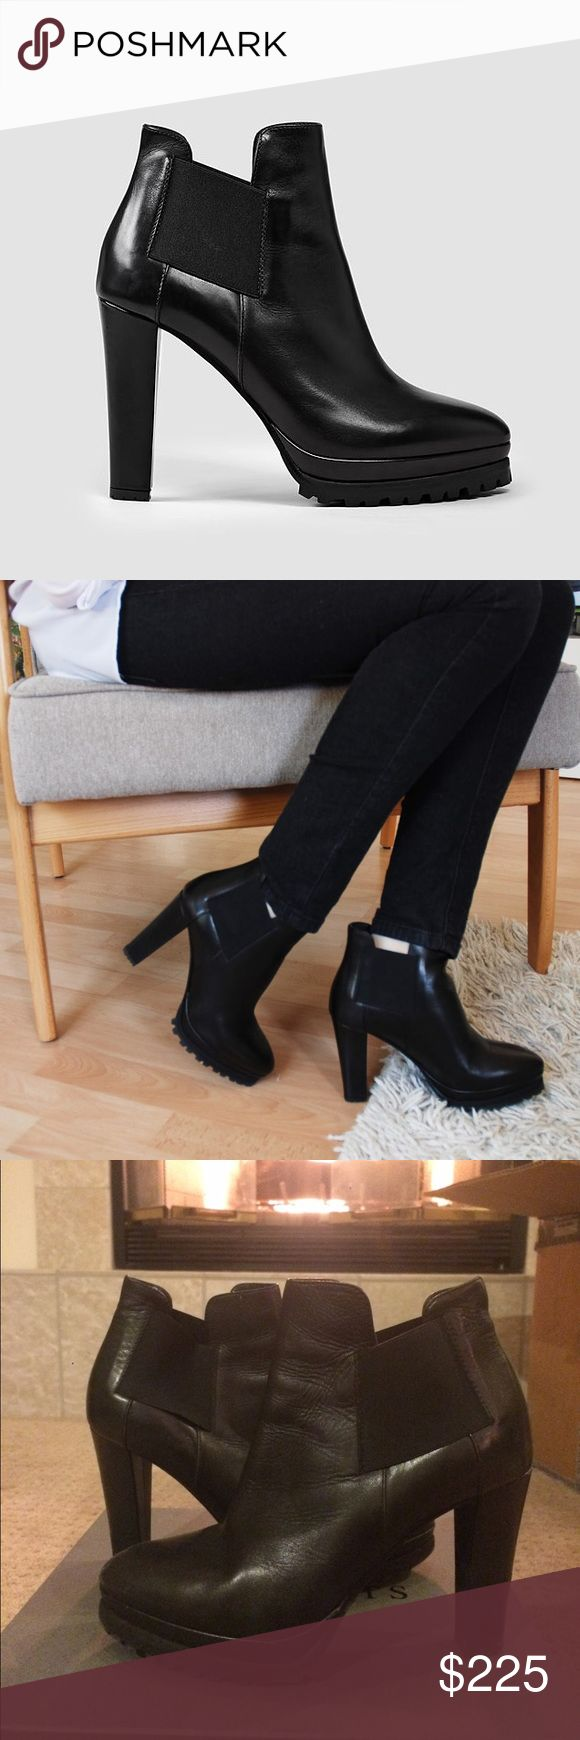 Heeled platform Chelsea boot Sarris Chelsea boot that has a platform heel! Designed in Italy. 100% leather. 4 inch heel. All Saints Shoes Ankle Boots & Booties